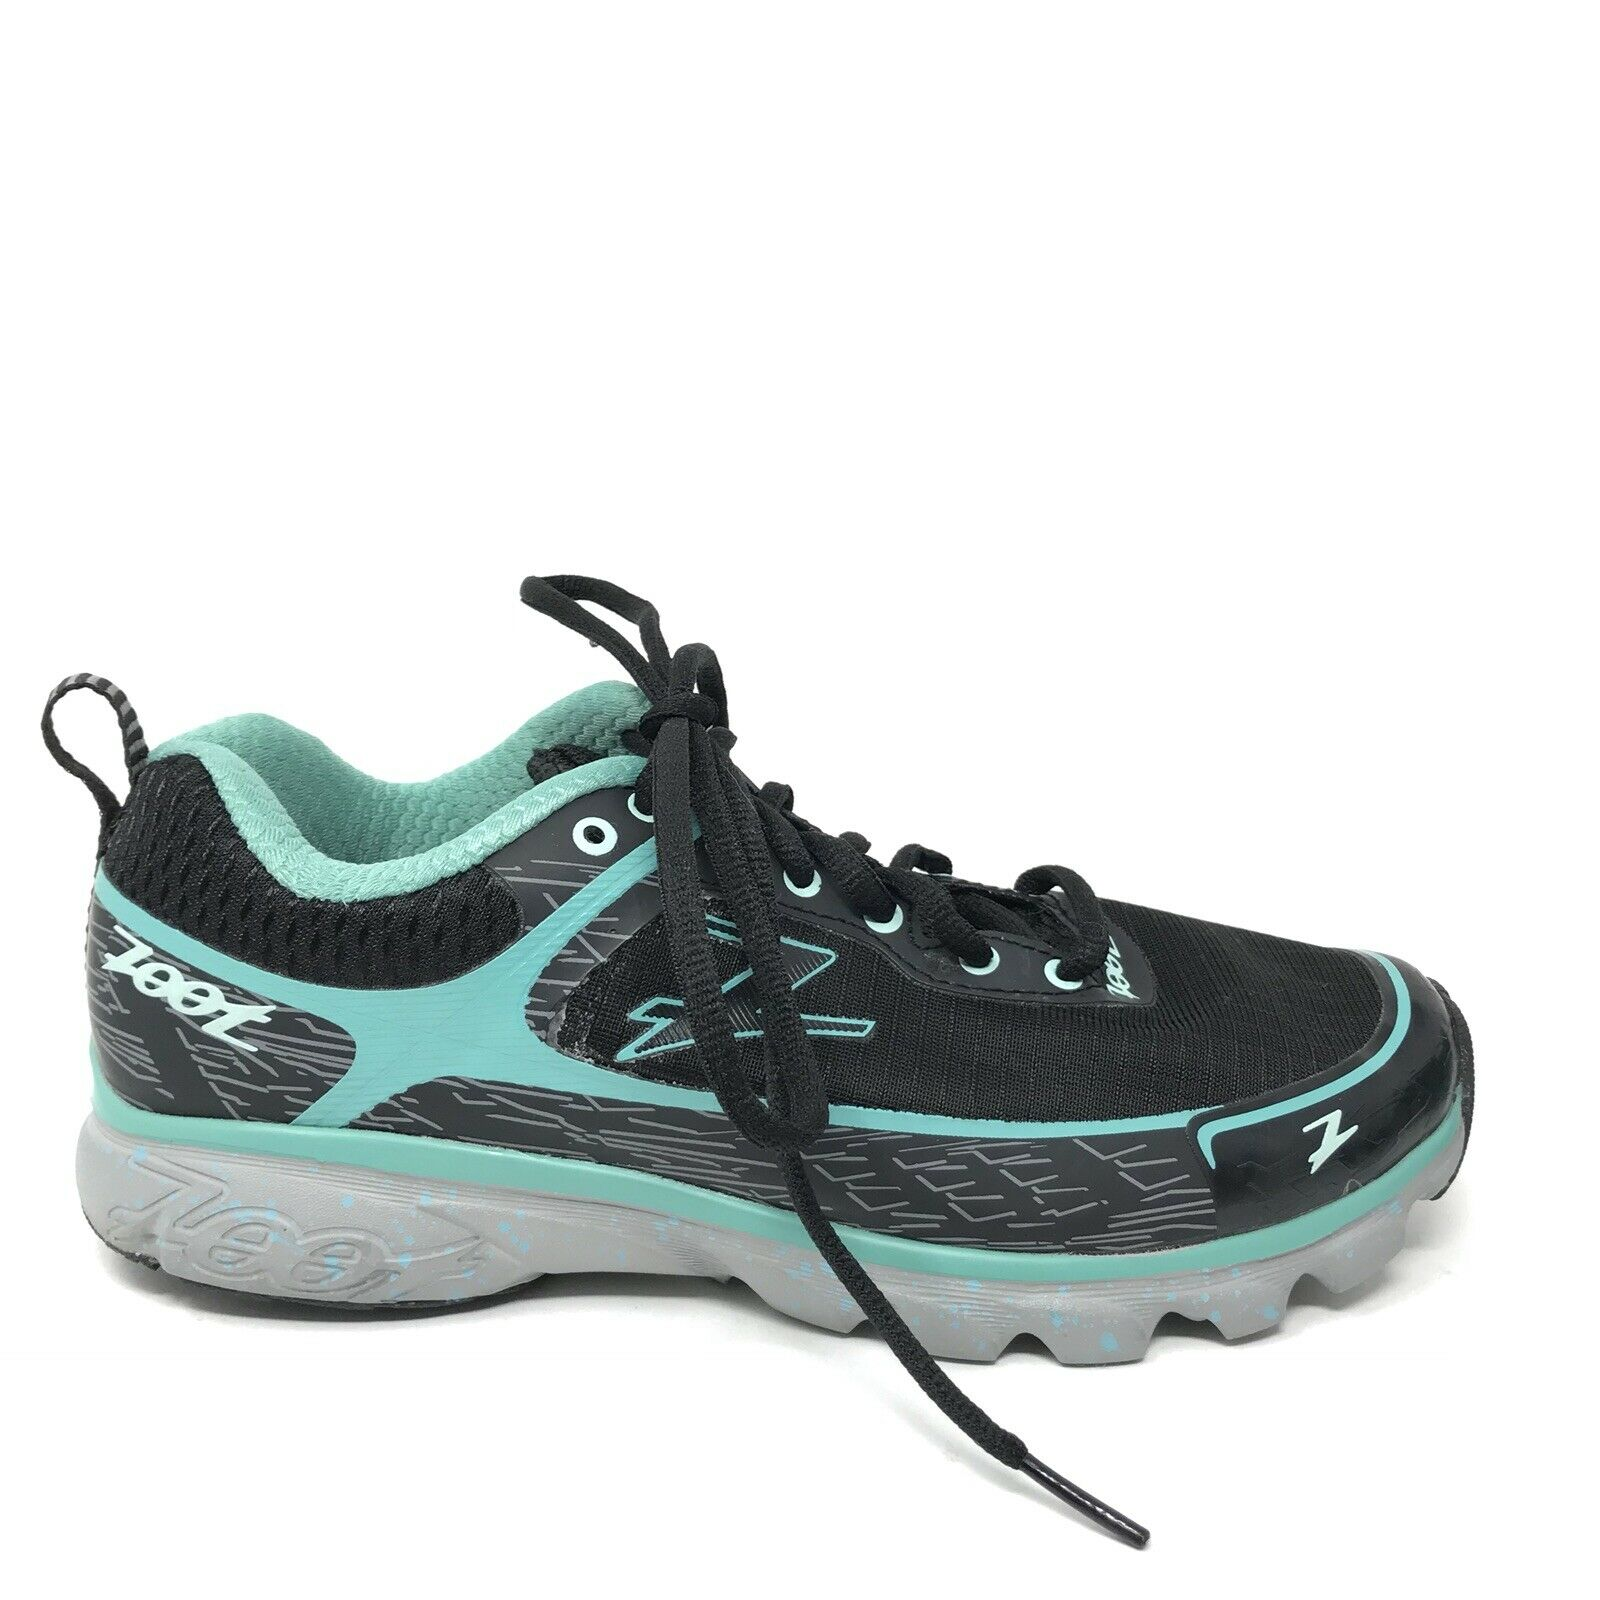 Zoot Women's Size 7 Solana ACR Running shoes Black Lagoon Lace Up Sneakers